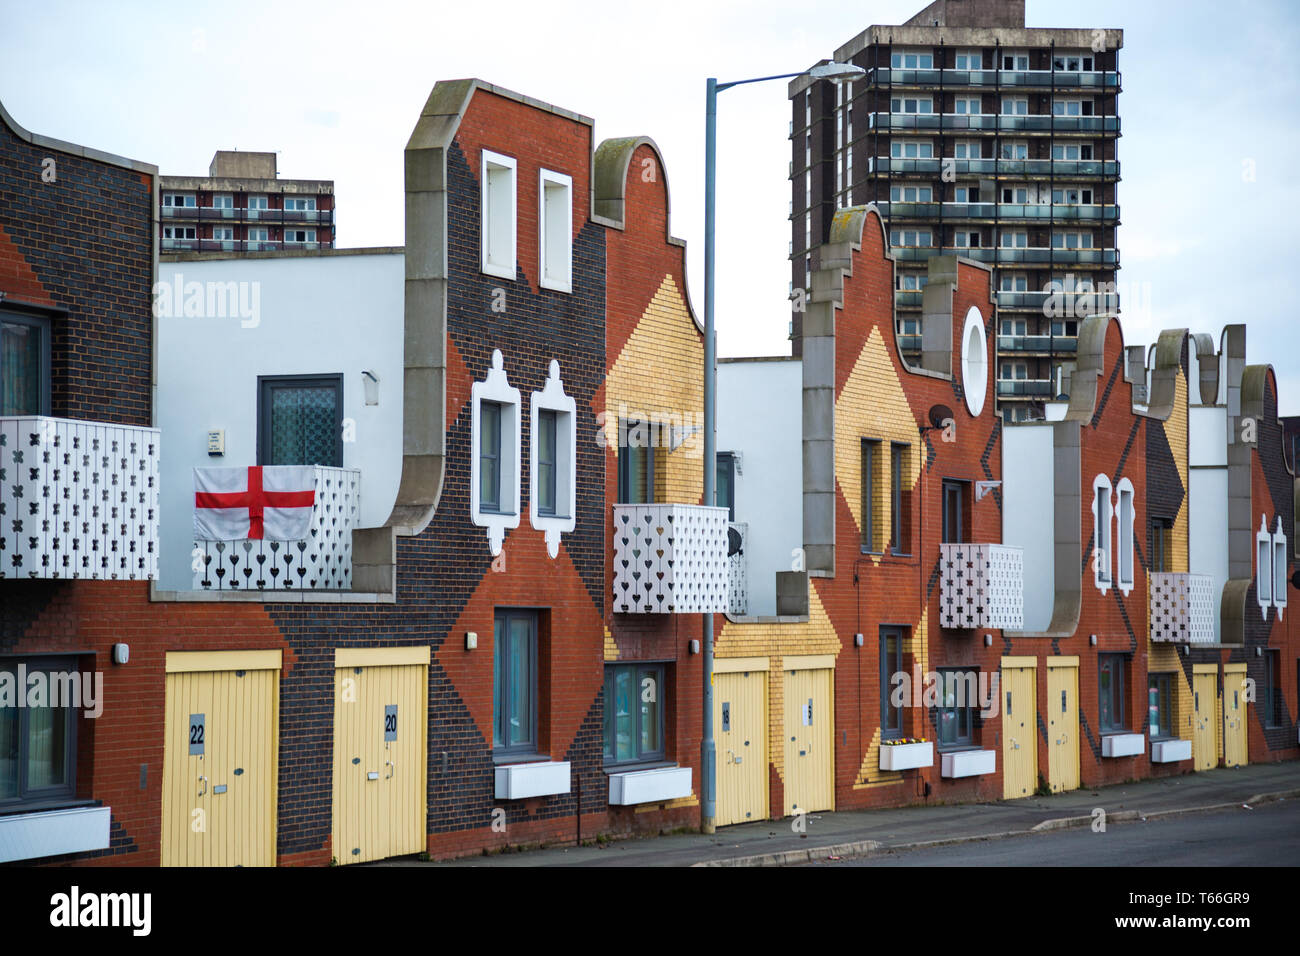 Woodward Place in East Manchester - Colourful council houses with original architecture in New Islington Manchester - Stock Image